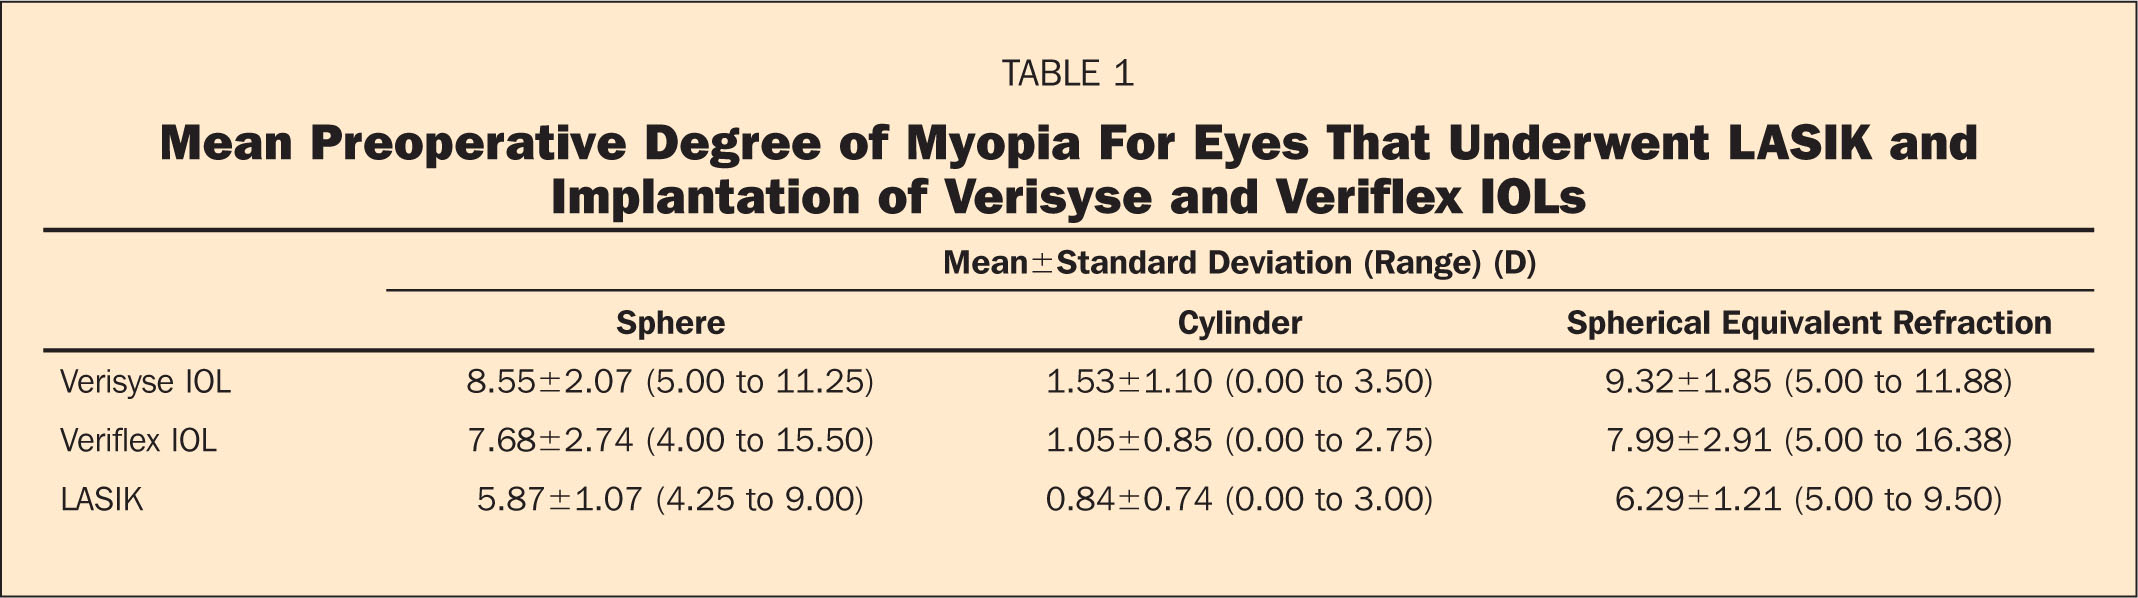 Mean Preoperative Degree of Myopia for Eyes that Underwent LASIK and Implantation of Verisyse and Veriflex IOLs